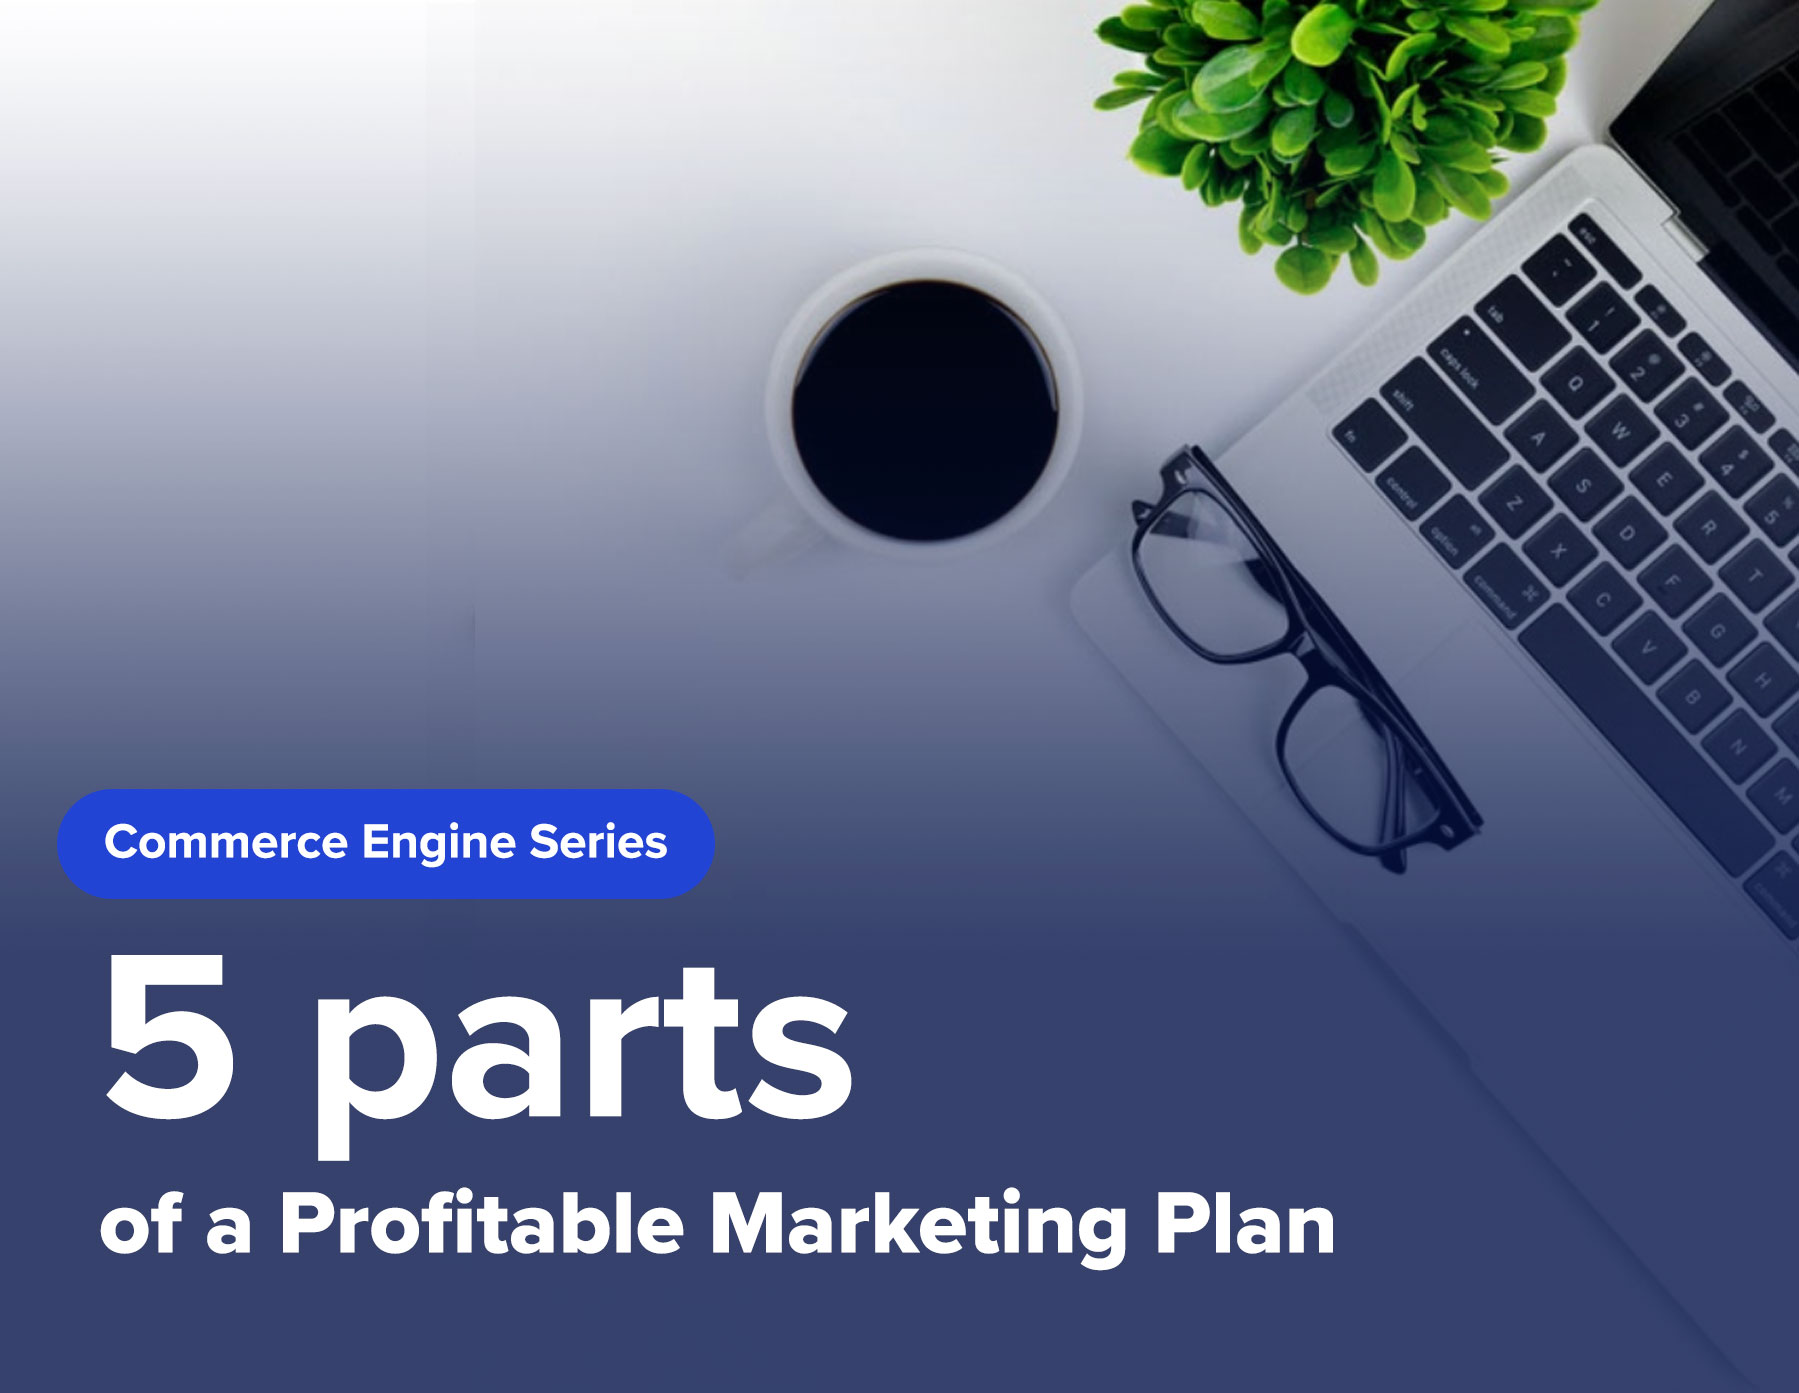 The 5 Parts of a Profitable Marketing Plan